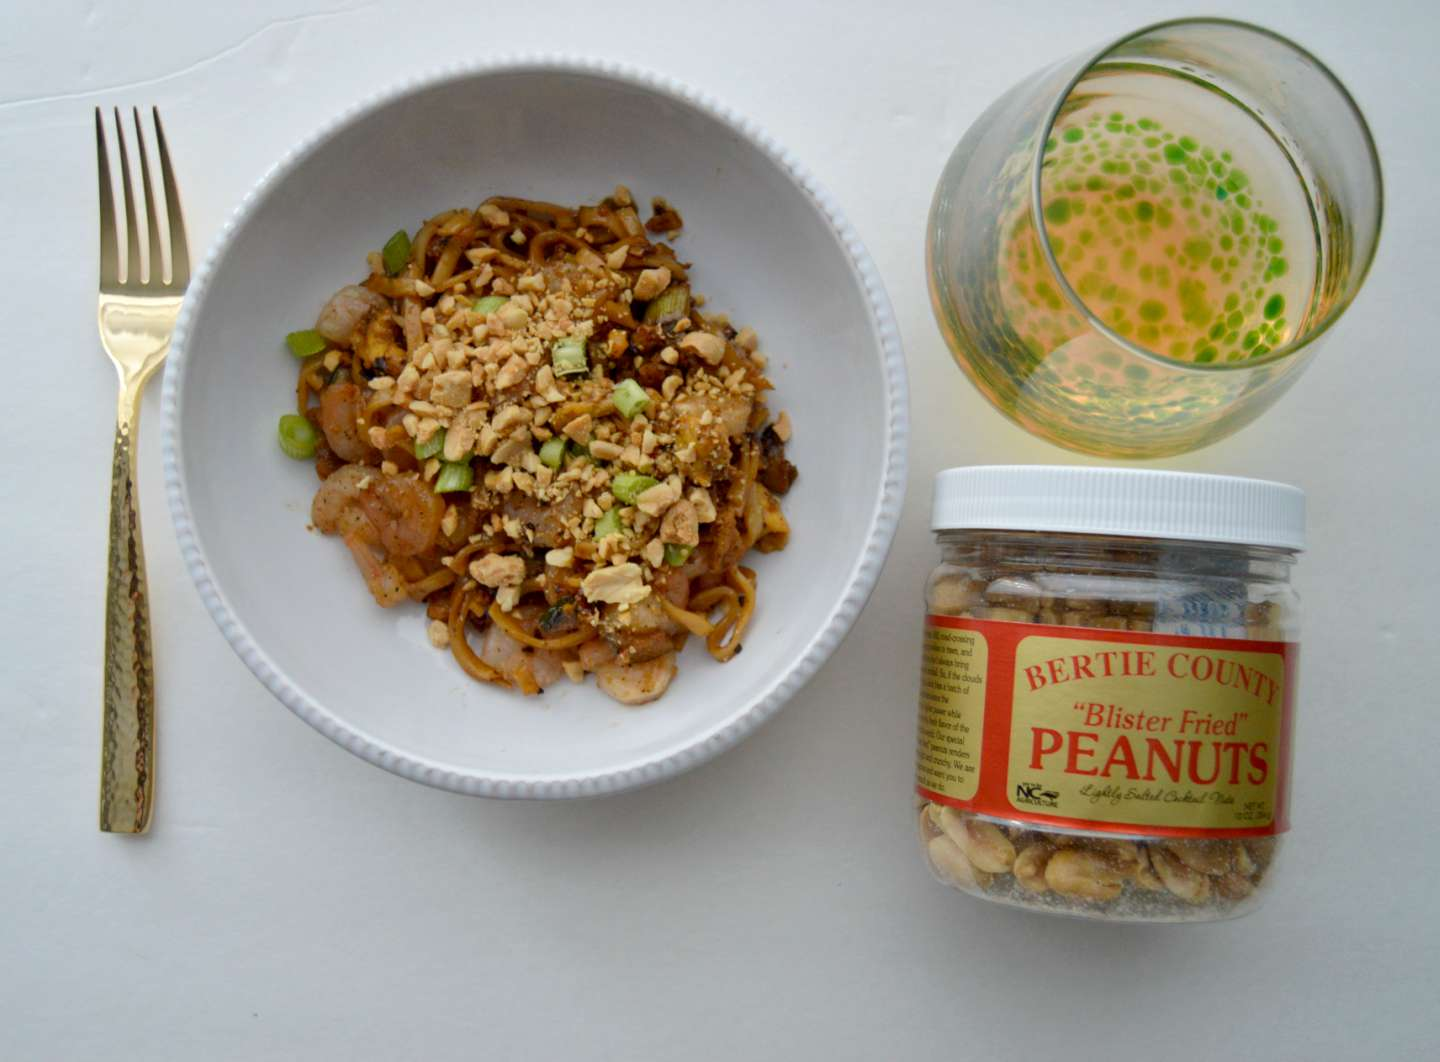 Easy Shrimp Noodle Bowls with Bertie County Peanuts - I'm Fixin' To - @mbg0112